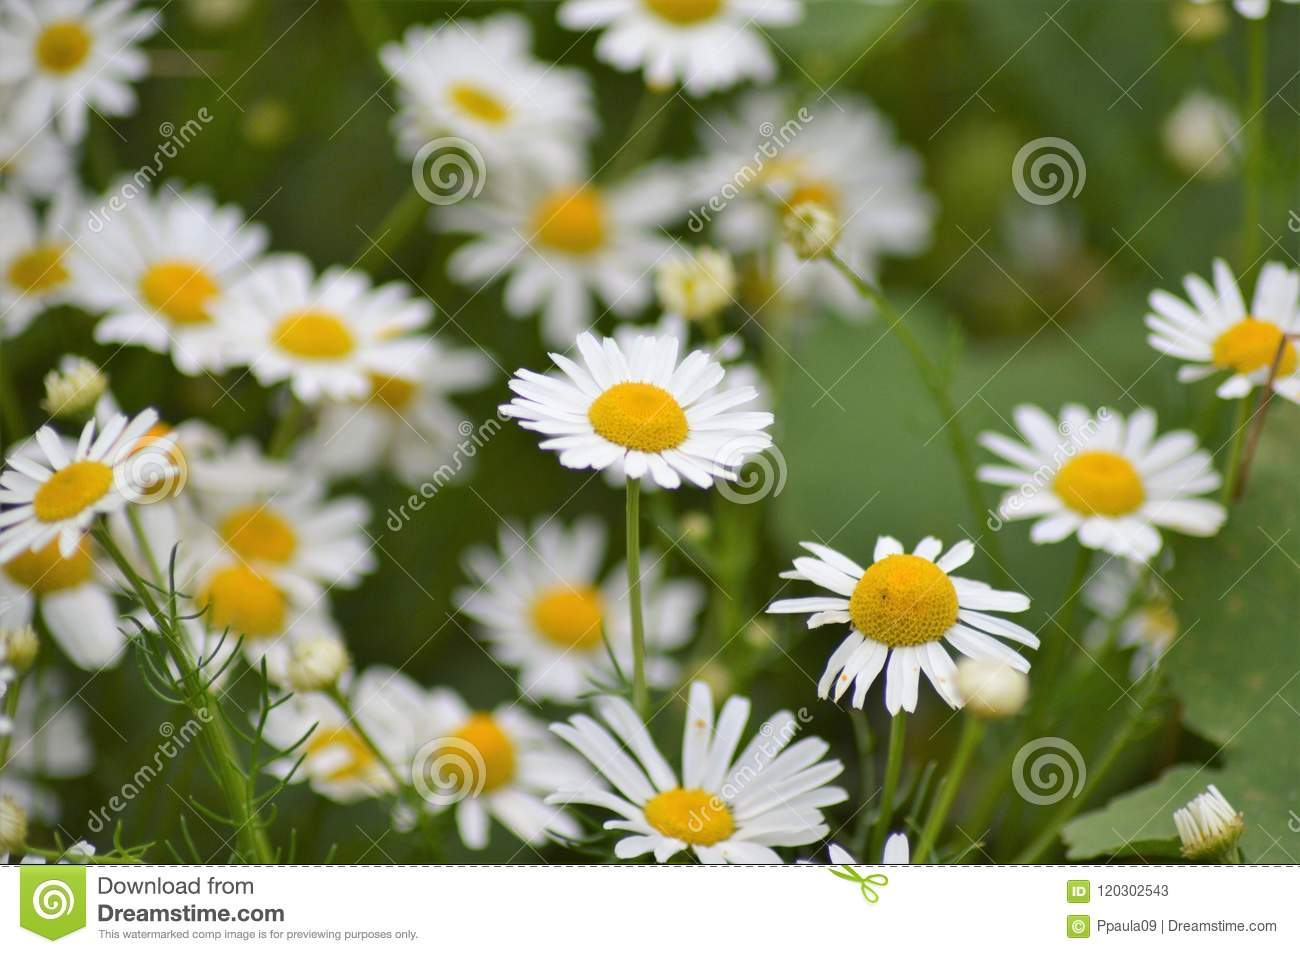 The wild daisy flower stock image image of lawn considered 120302543 the wild daisy flower izmirmasajfo